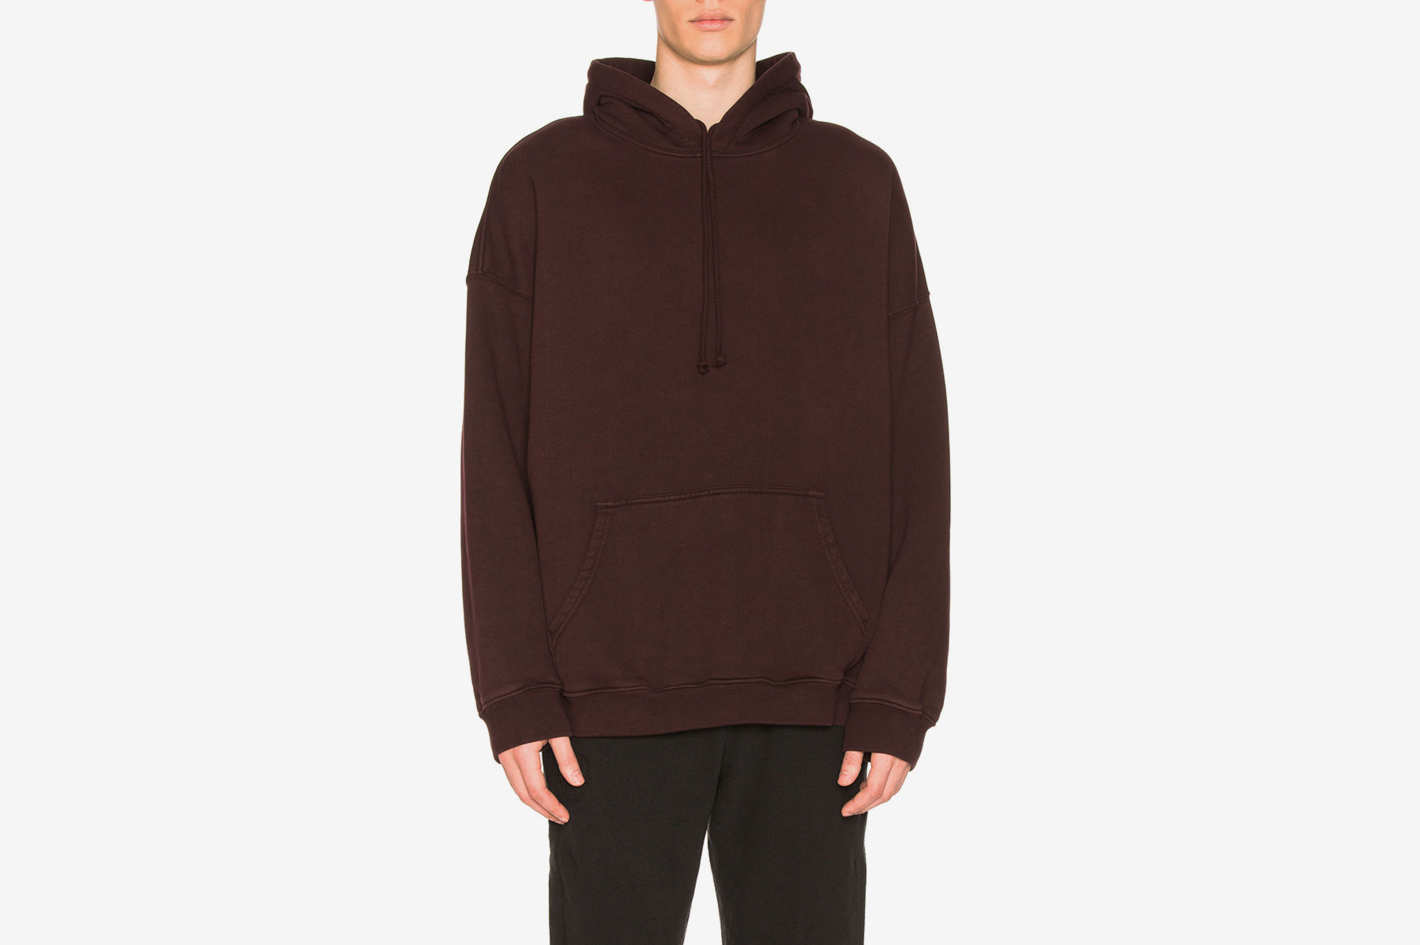 Yeezy Season 5 Single Layer Hoodie